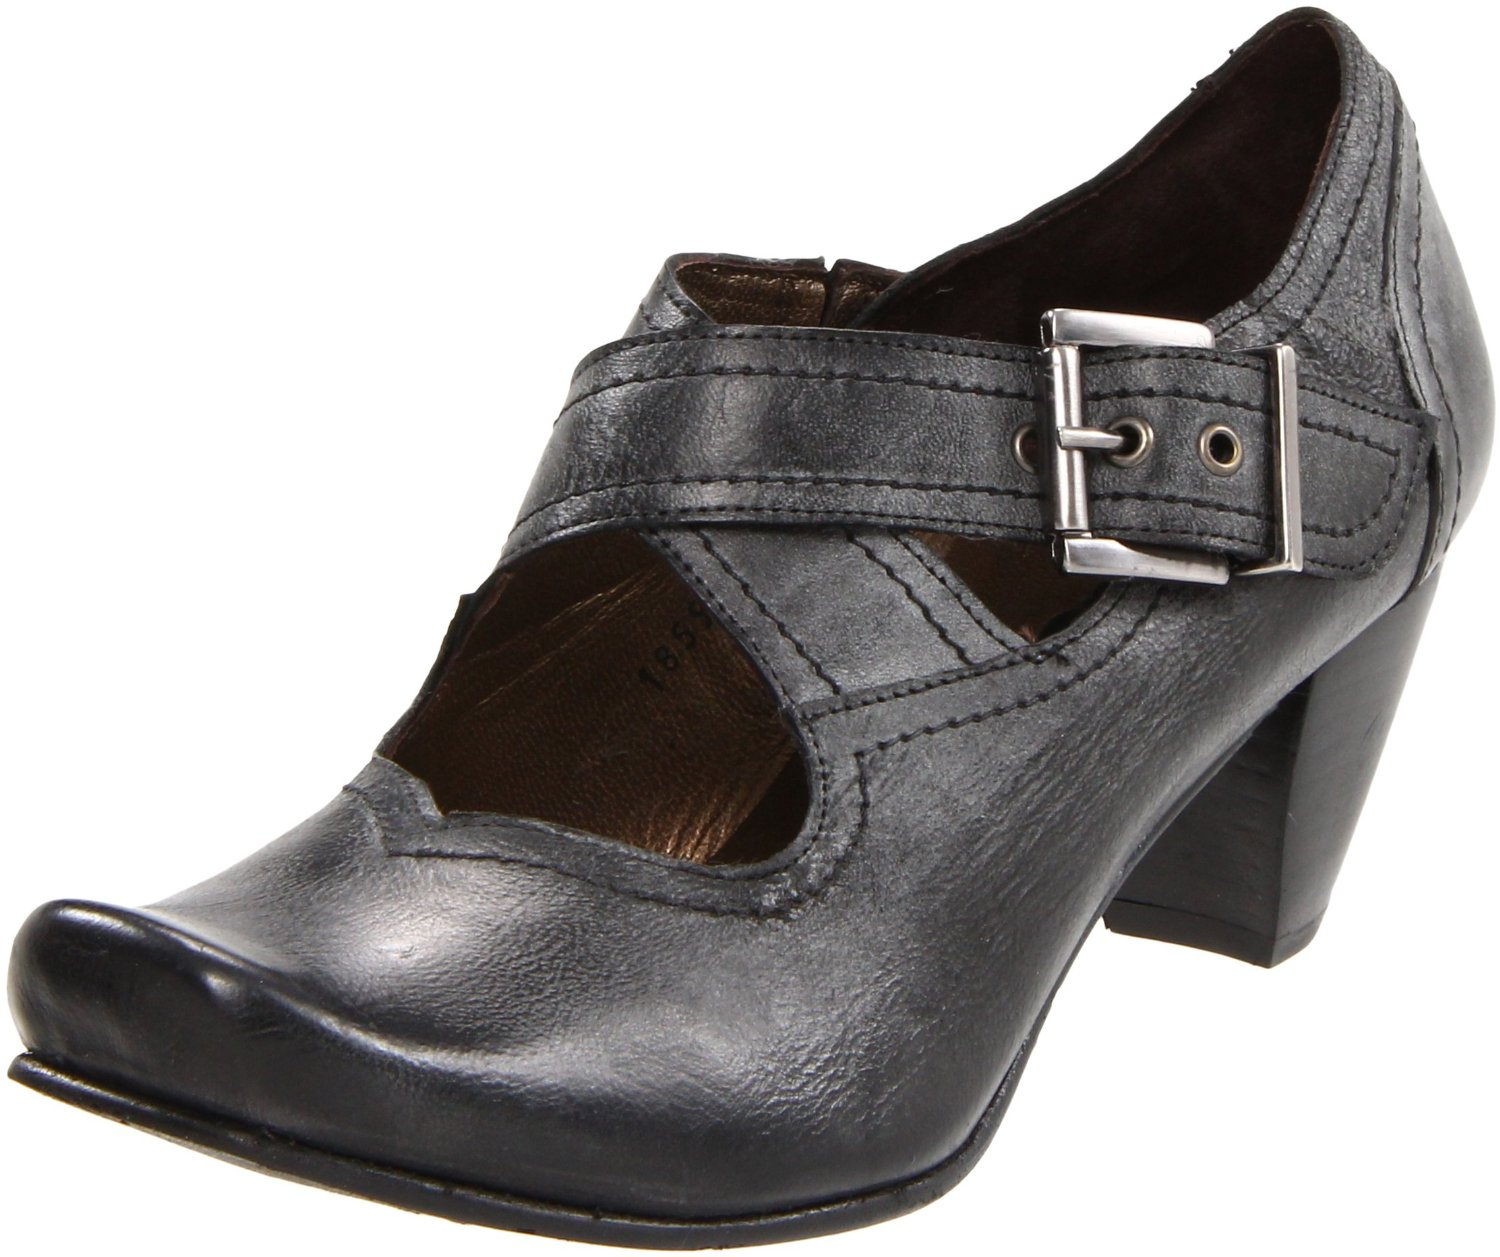 Fidji Fidji Womens E926 Mary Jane Pump In Black